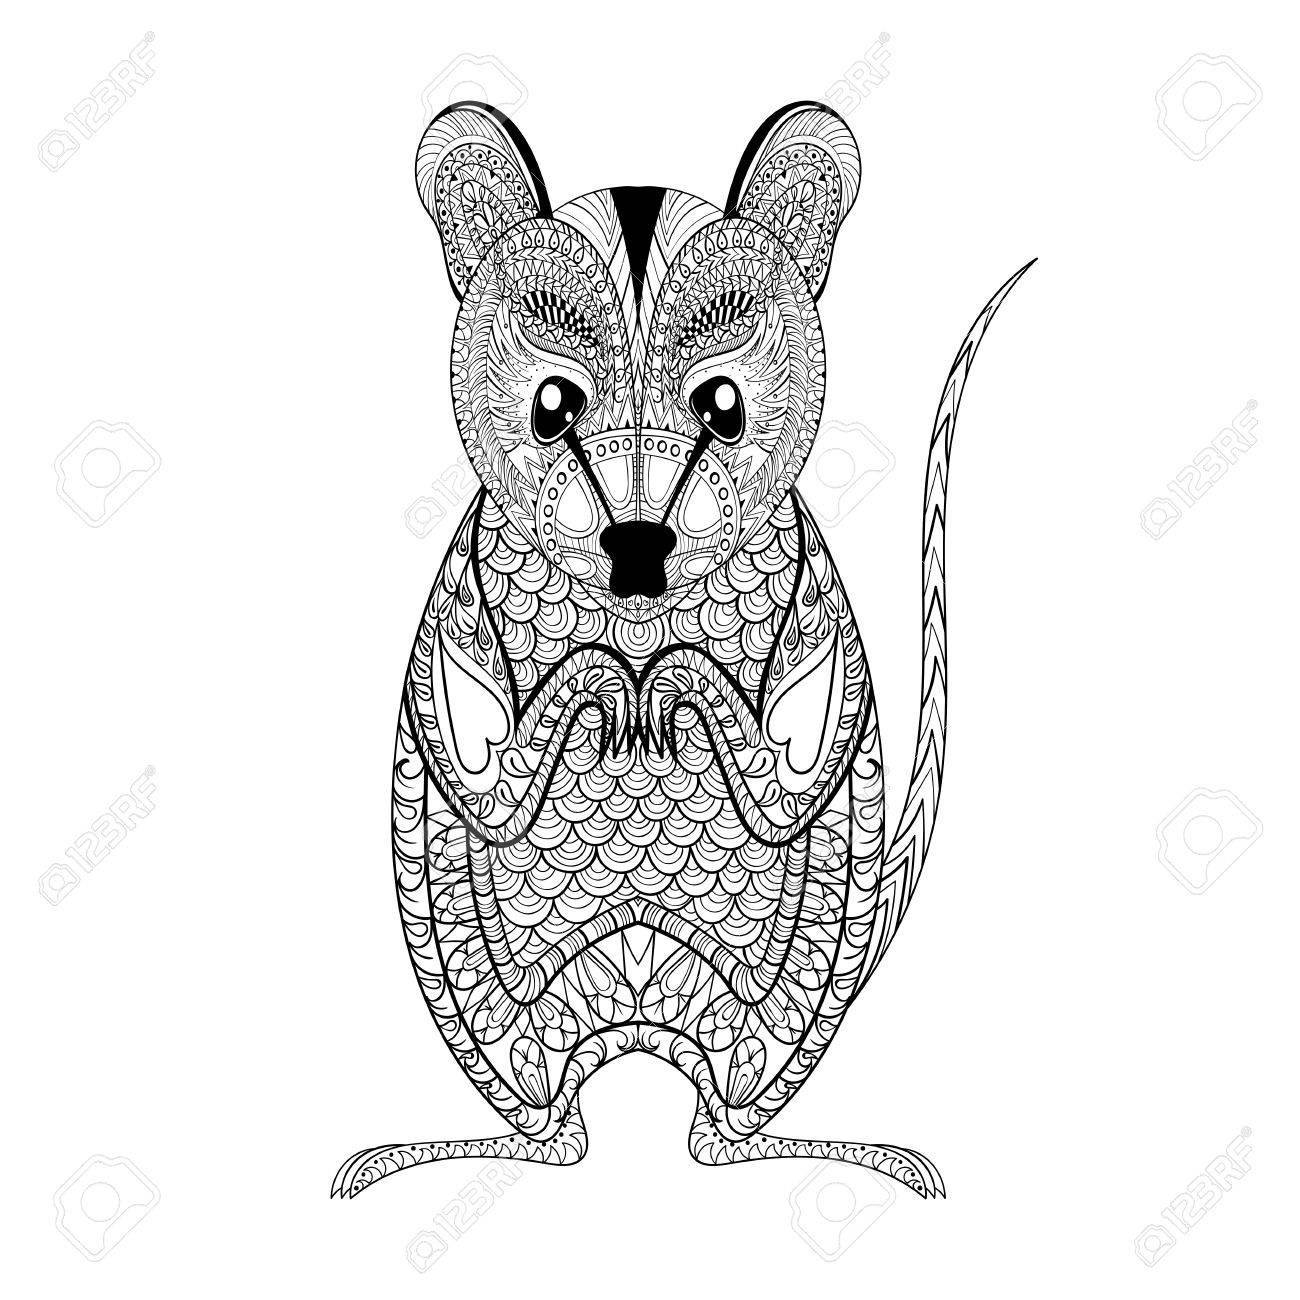 Zentangle Possum totem for adult anti stress Coloring Page for art therapy, illustration in doodle style. Vector monochrome sketch with high details isolated on white background - 51458774